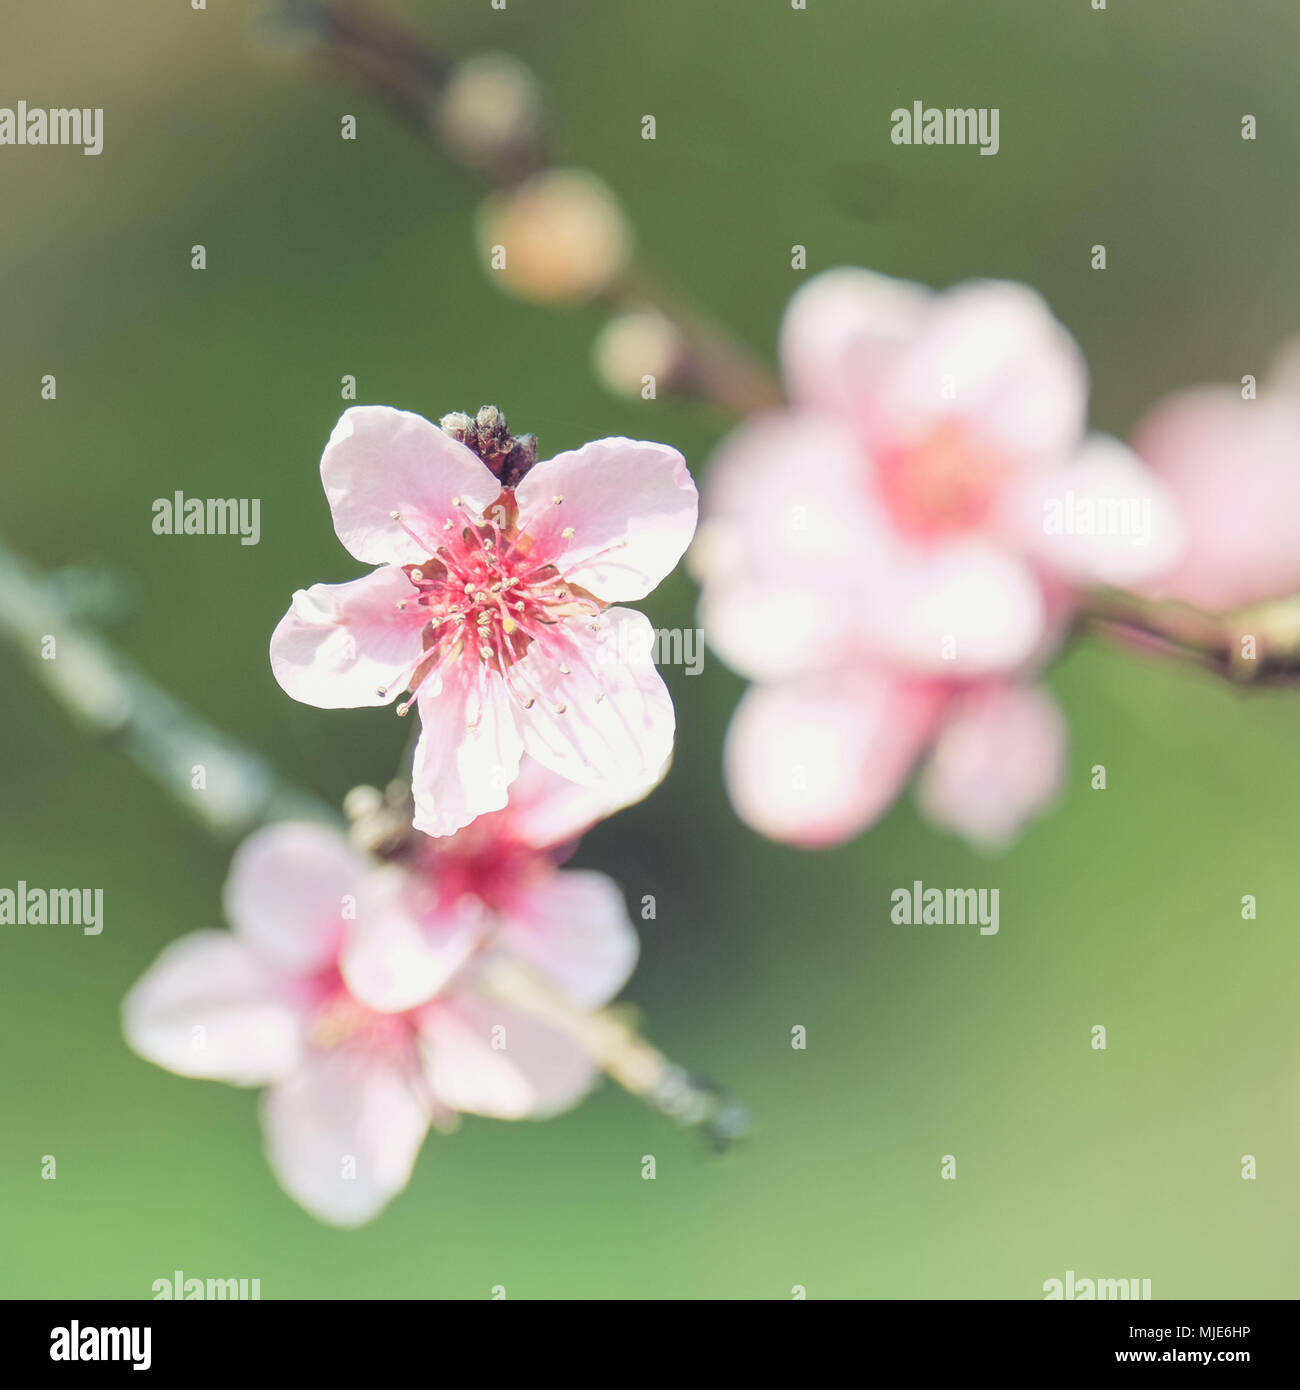 Spring magic, close-up of pink peach blossoms, blurred background - Stock Image